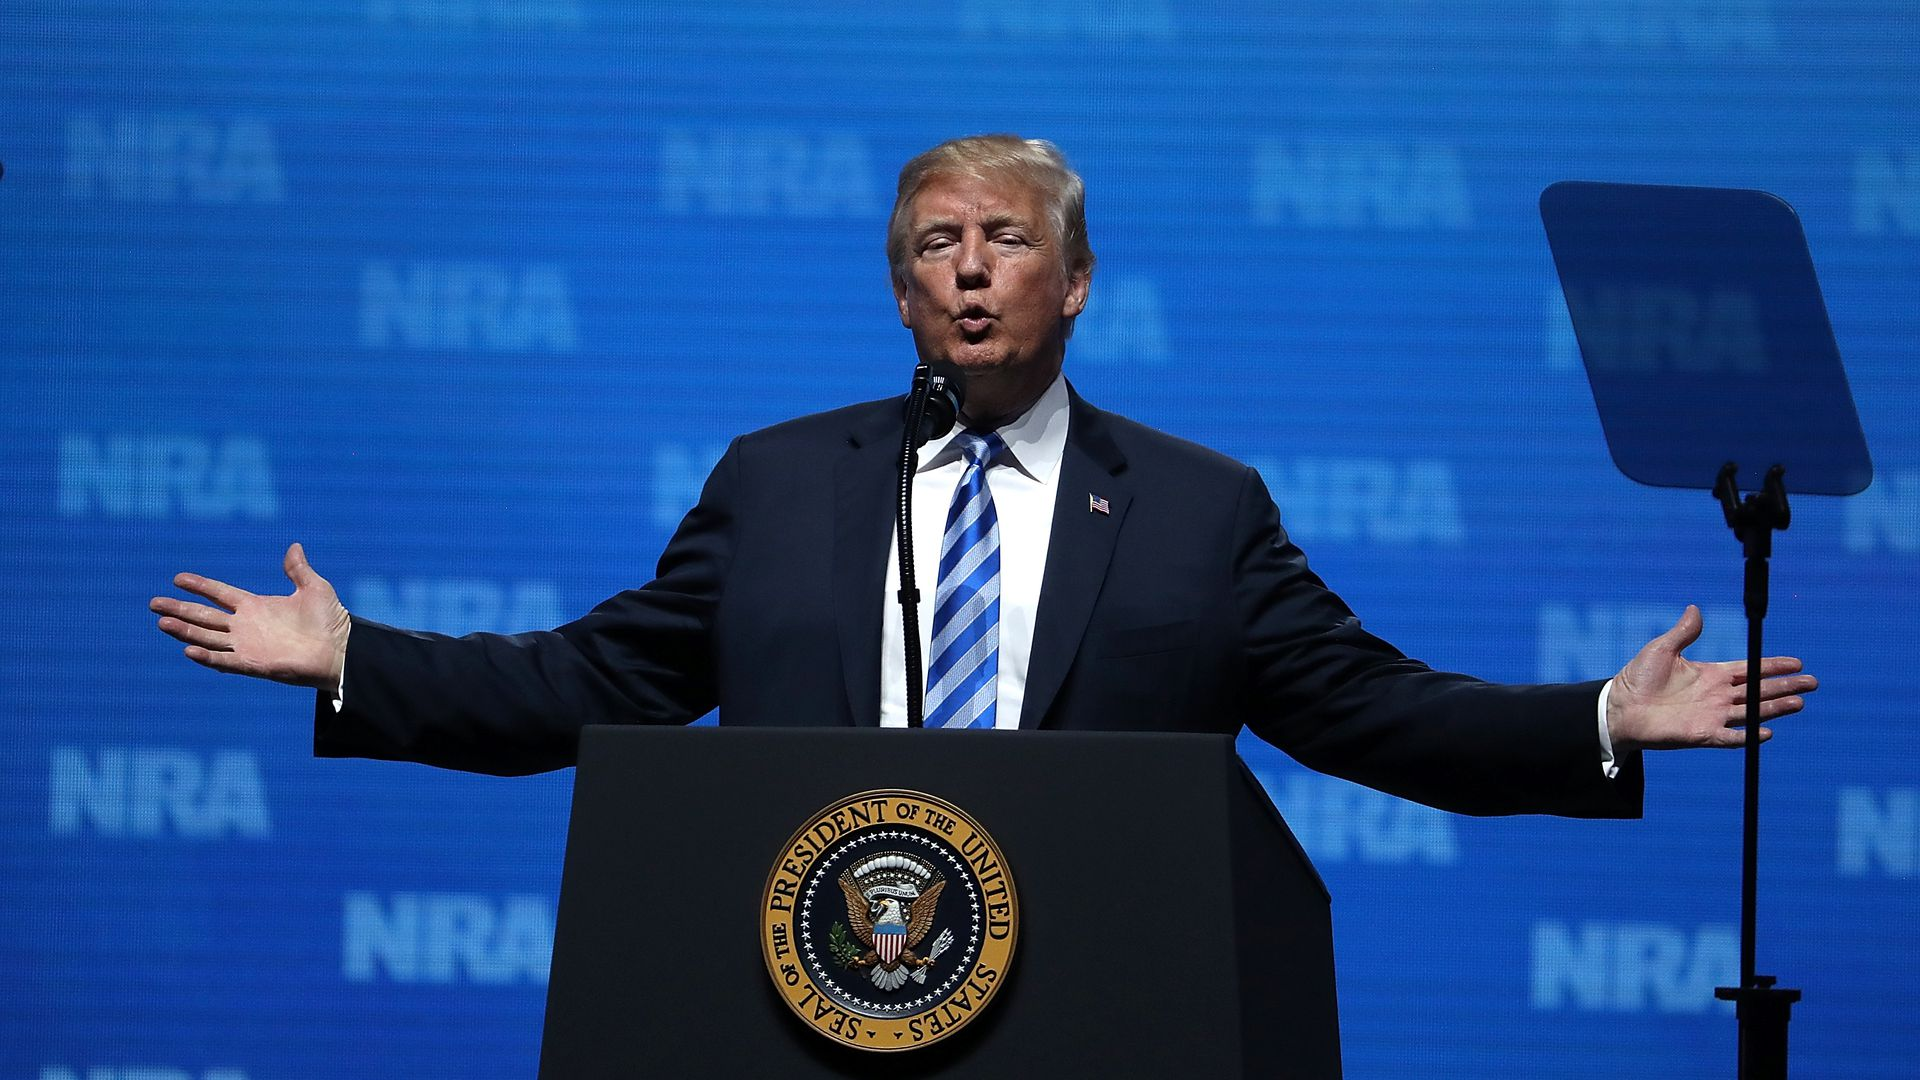 President Trump delivering a speech to the NRA